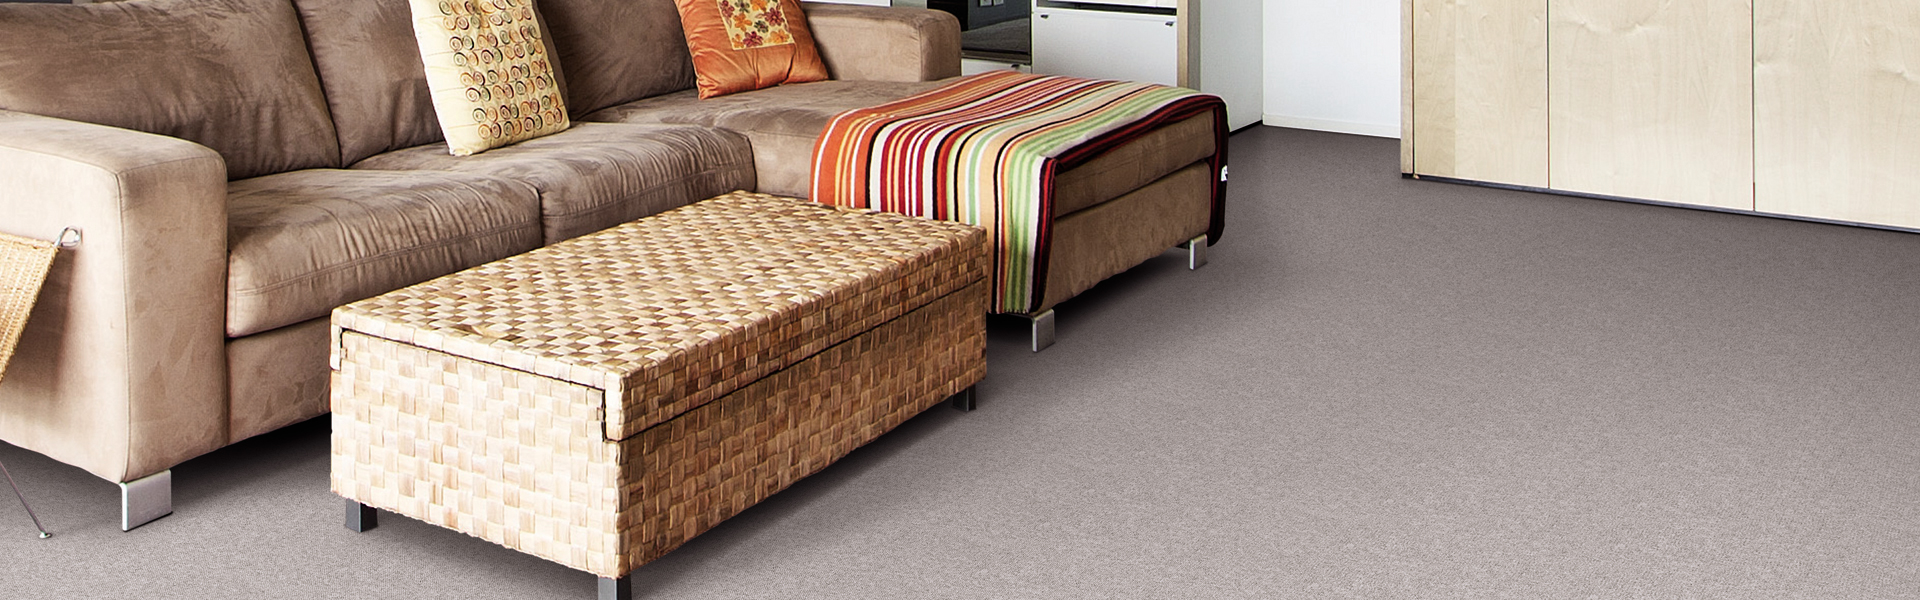 Millbrae Iii 6033 Broadloom Carpet Beaulieu Canada